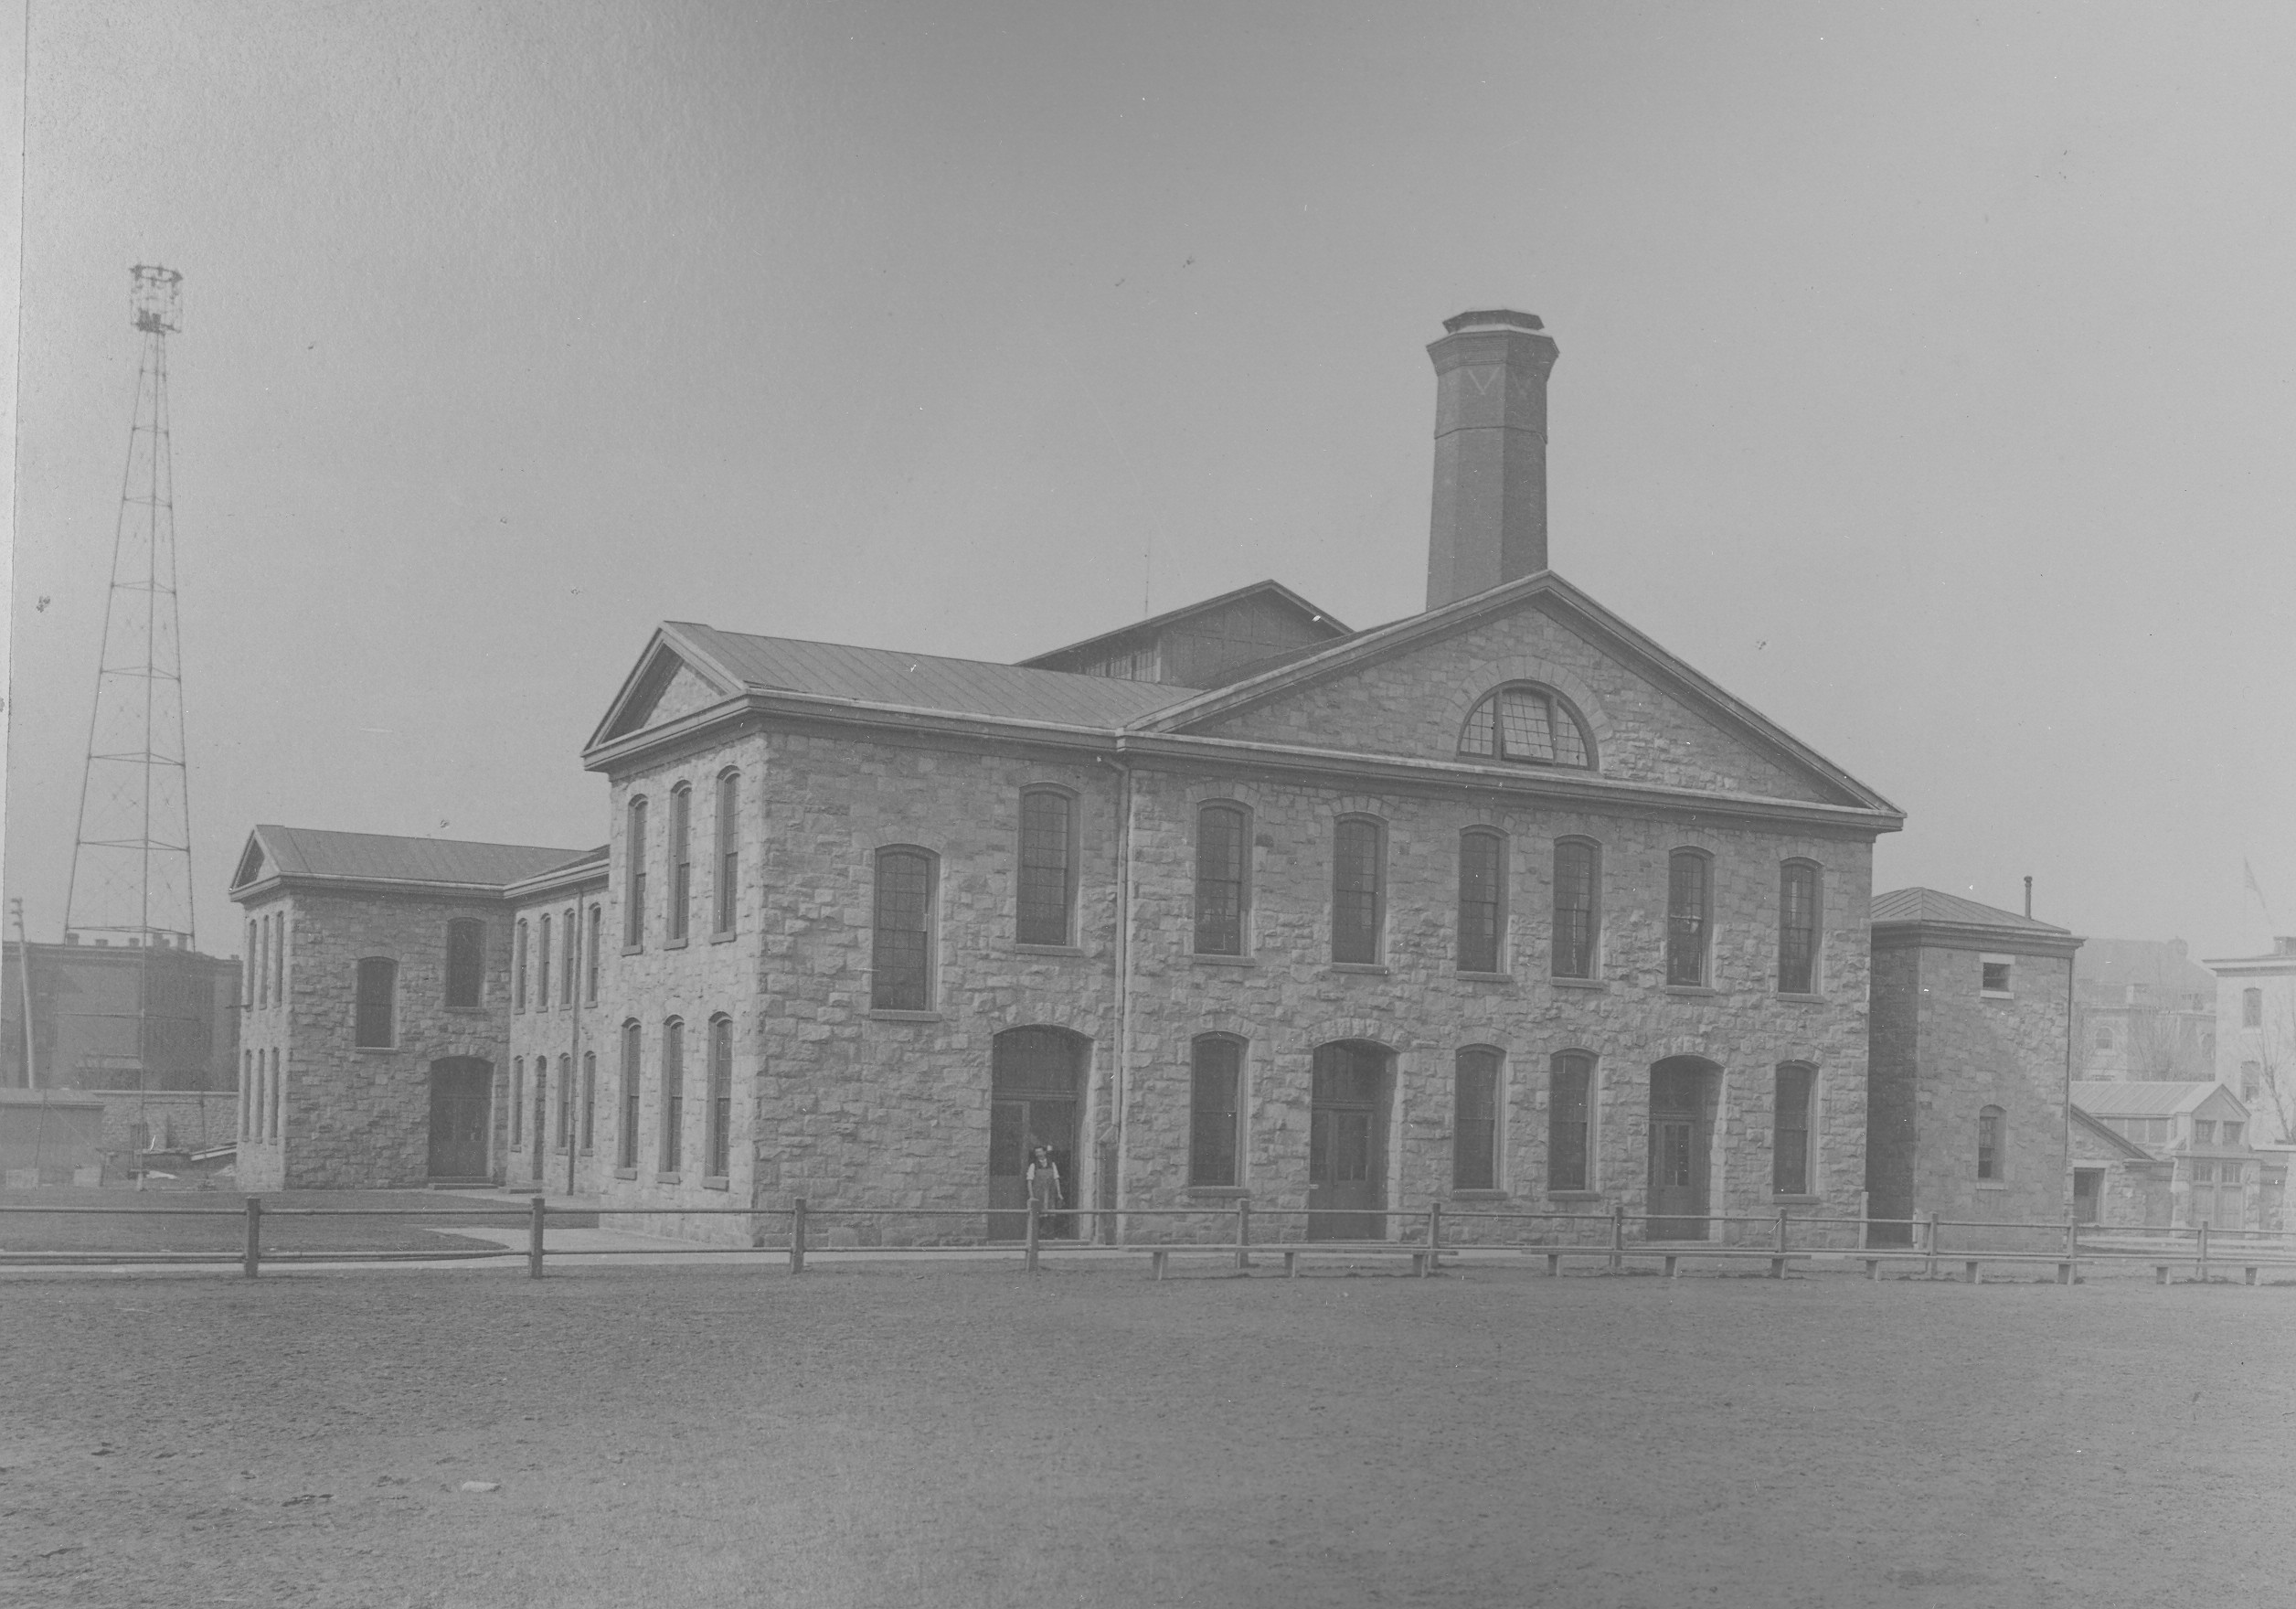 Girard College mechanical school. Photo taken in 1893, prior to 20th centur expansion.